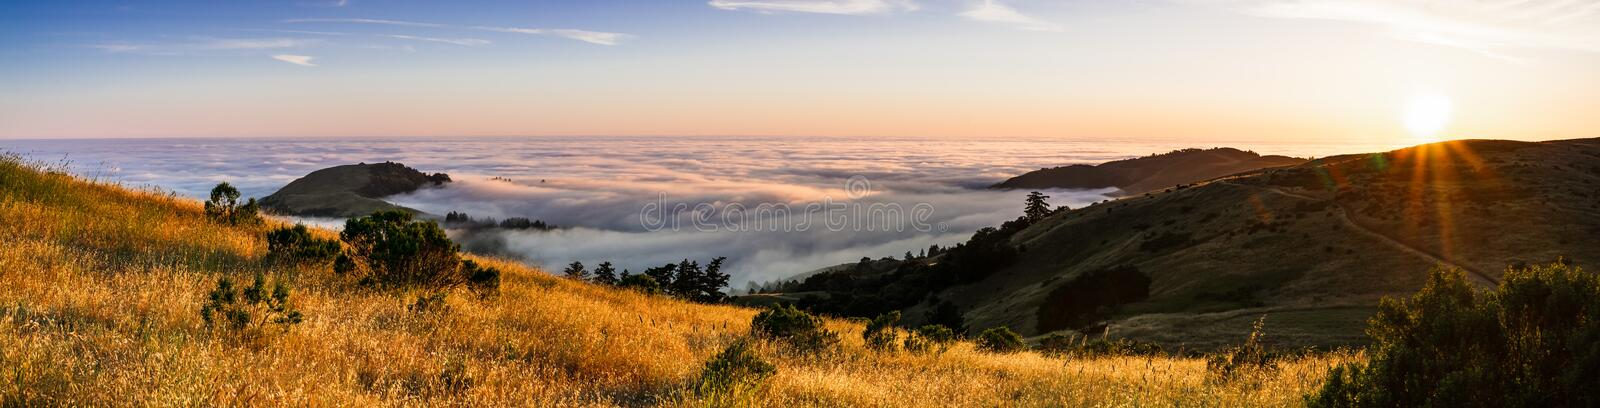 Panoramic view at sunset of valley covered in a sea of clouds in the Santa Cruz mountains, San Francisco bay area, California royalty free stock photo